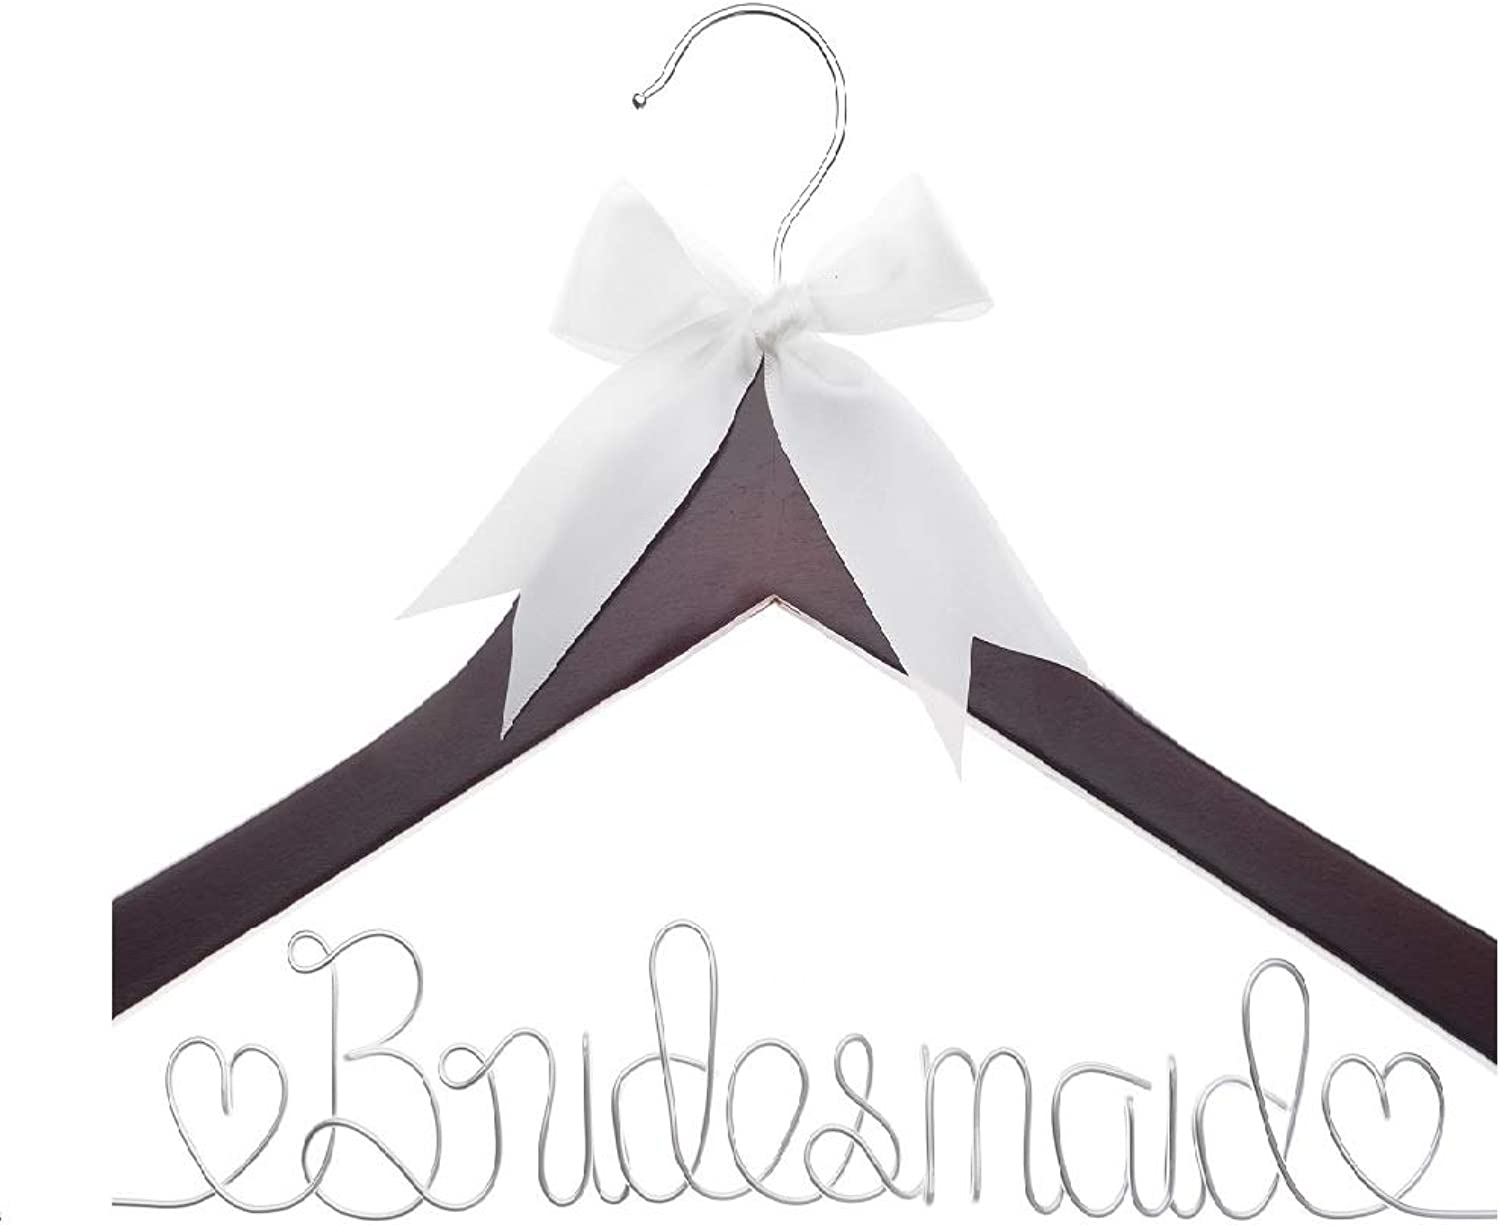 Ella Celebration Bridesmaid Hanger, Wood and Wire Hangers for Bridesmaids, Bridal Party Gifts (4)